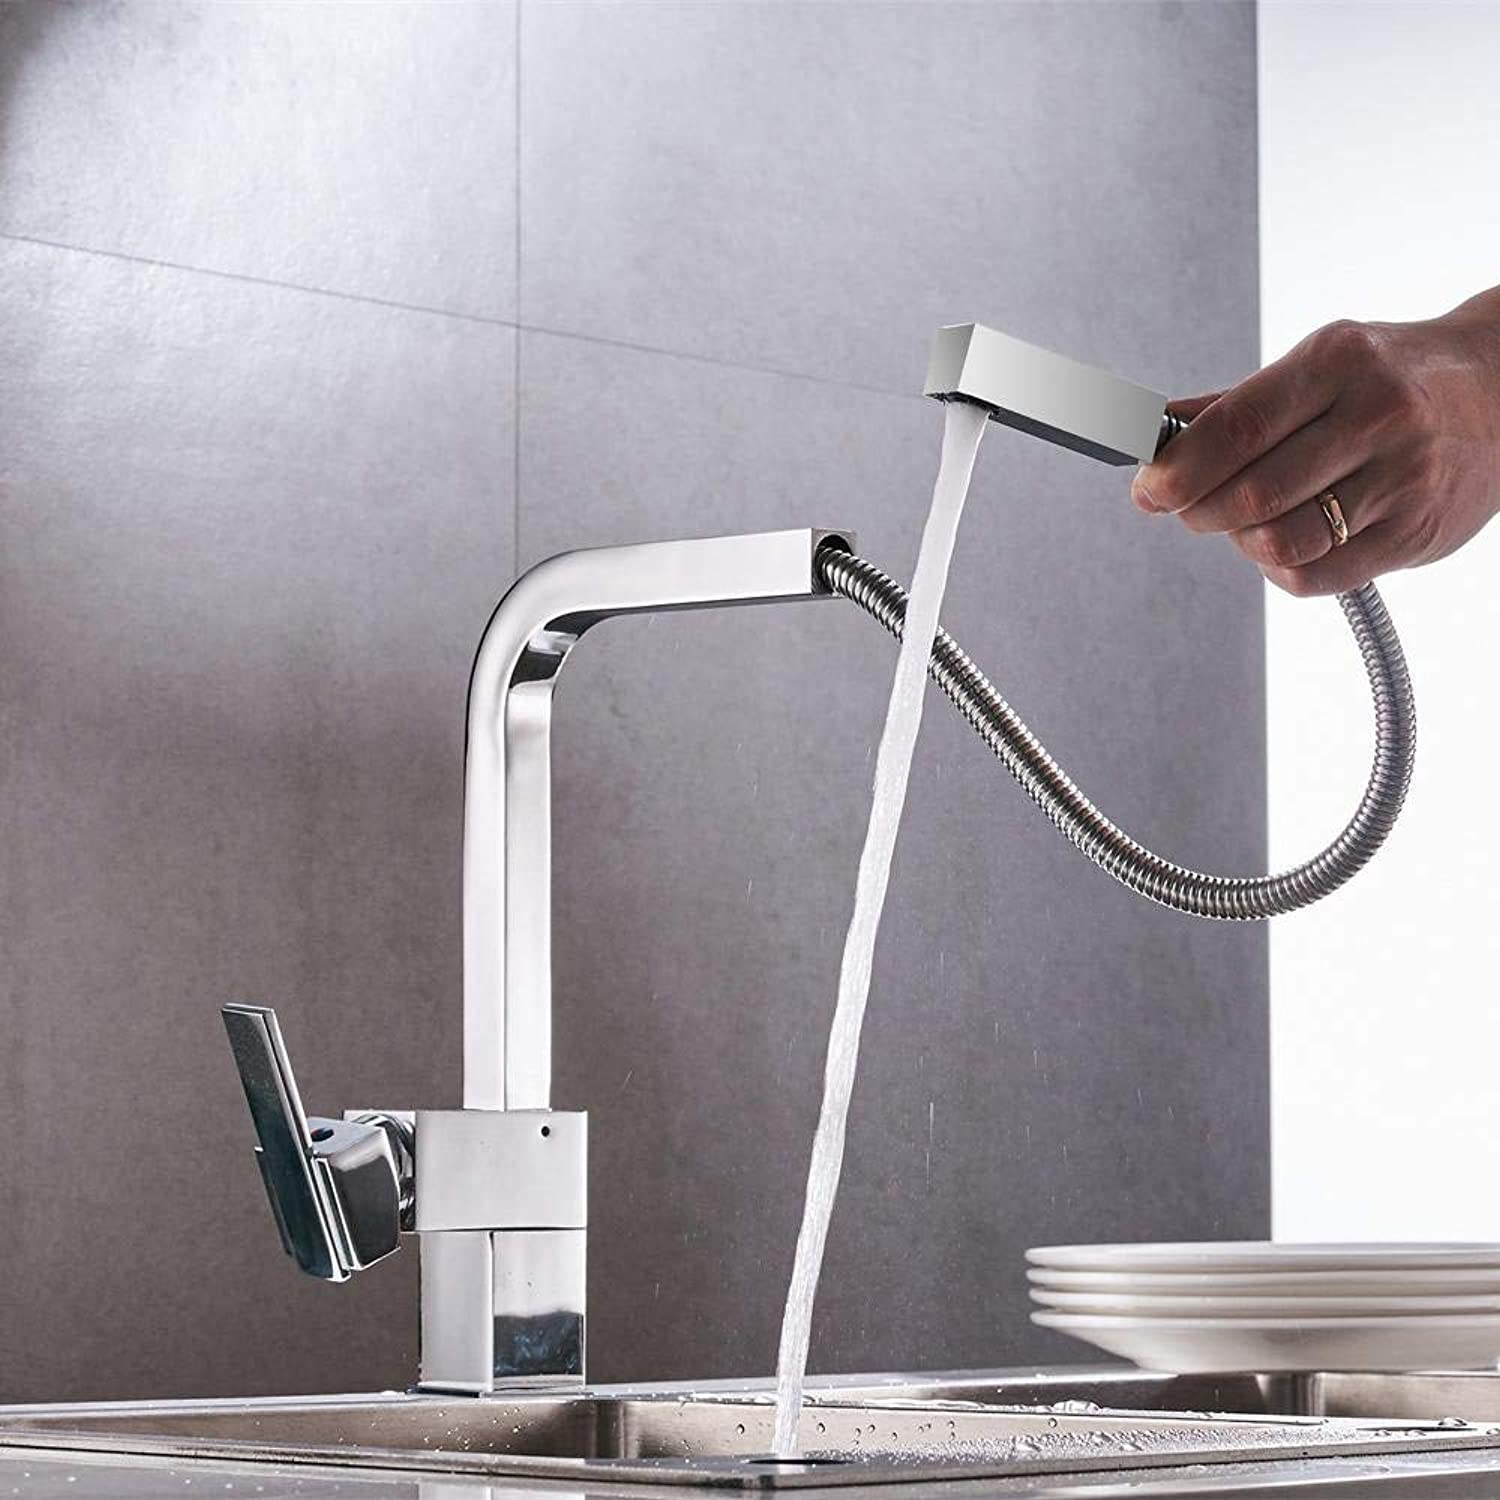 New Chrome Pull Out Kitchen Faucet Square Brass Sink Kitchen Faucets Pull Out Kitchen Tap Xt-18 (color   -, Size   -)